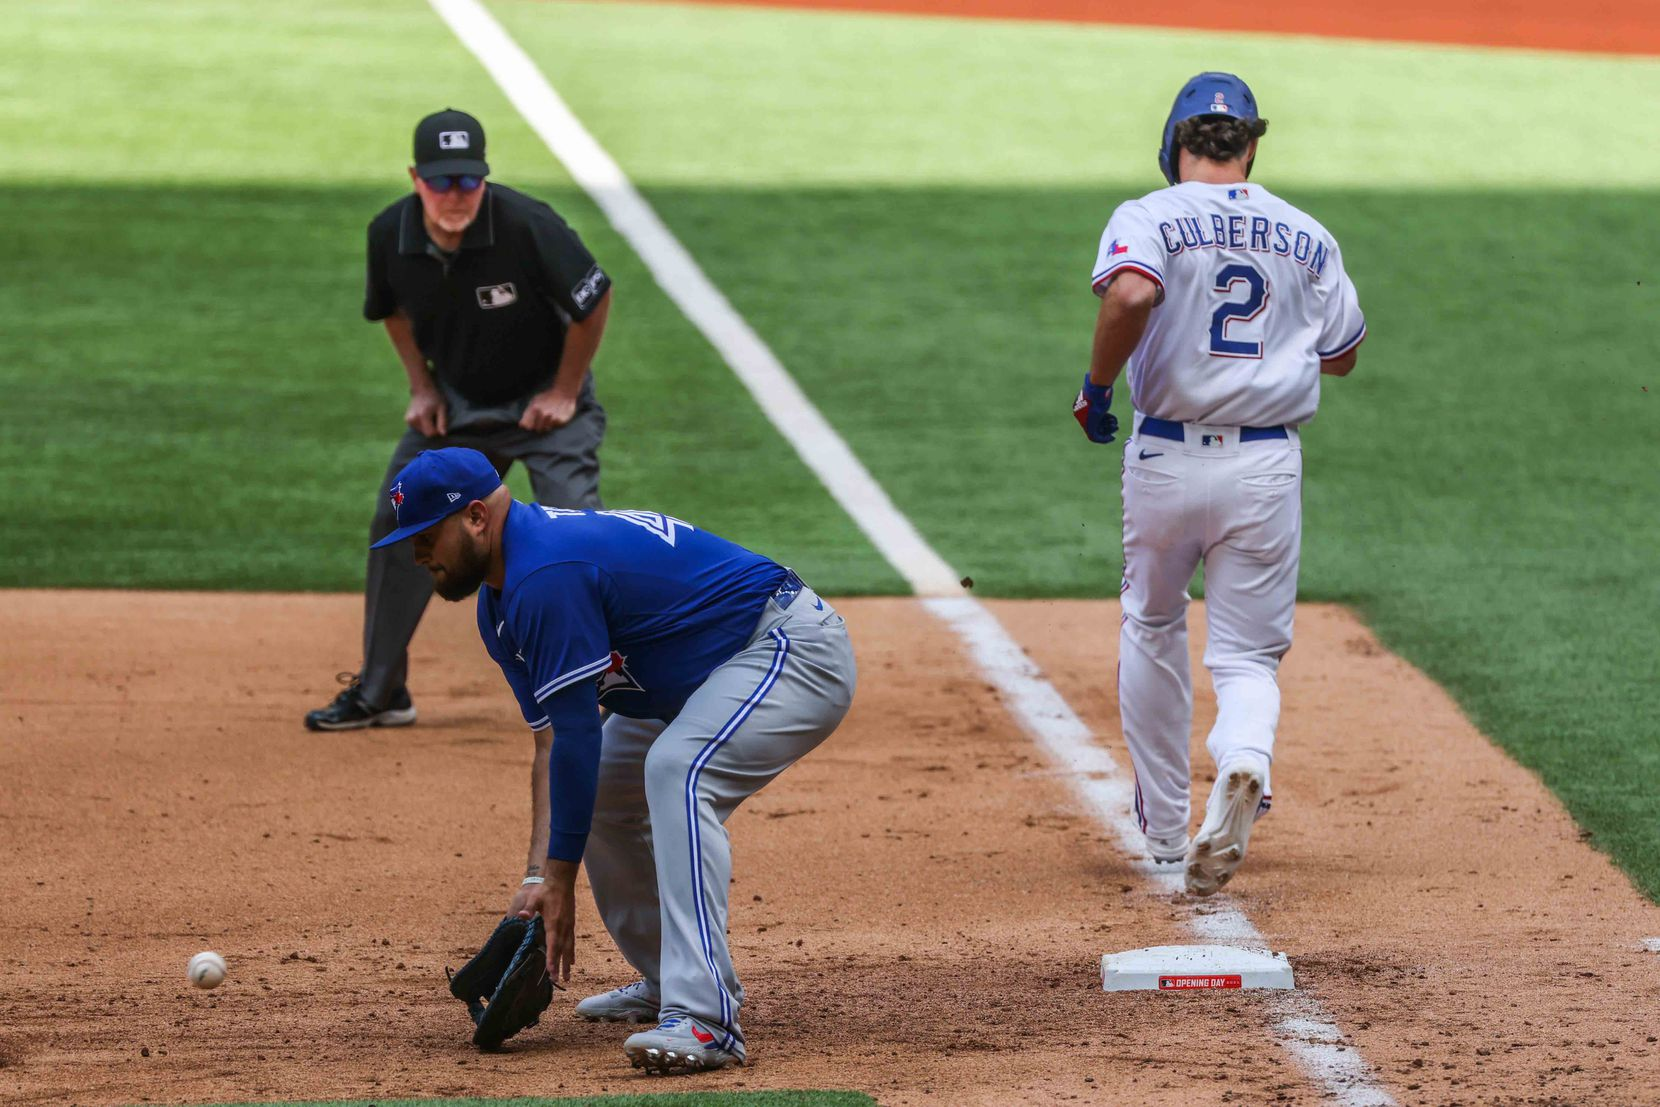 Texas Rangers' infielder Charlie Culberson No. 2 reaches first base safe during opening day against Toronto Blue Jays at the Globe Life Field in Arlington, Texas on Monday, April 5, 2021. (Lola Gomez/The Dallas Morning News)